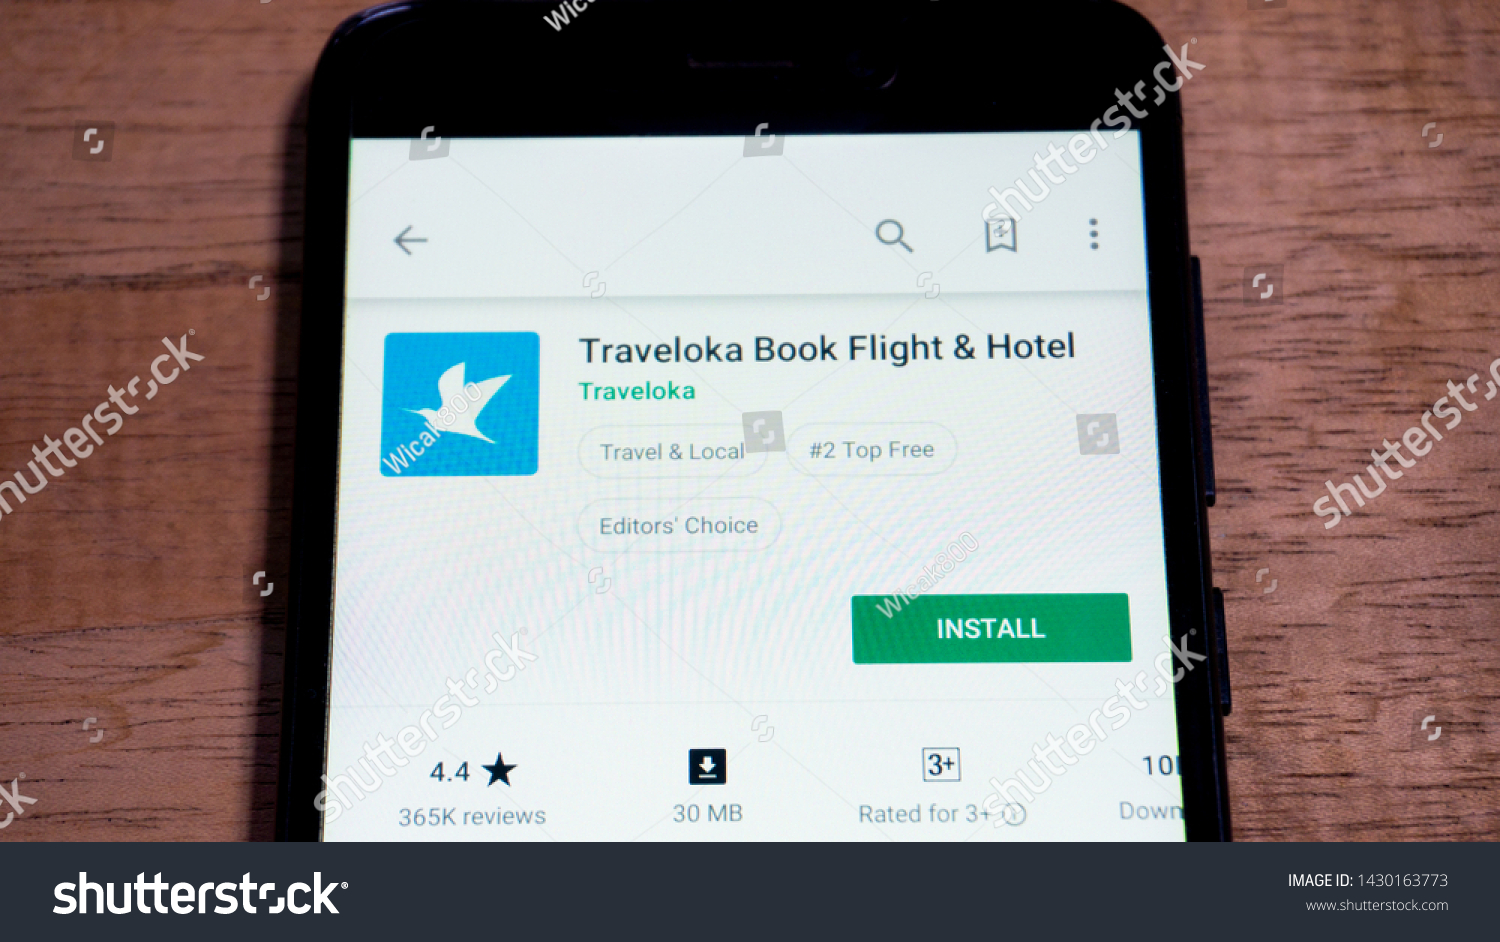 Magelang Central Java Indonesia May 31 2019 Traveloka Book Flight And Hotel App In Play Store